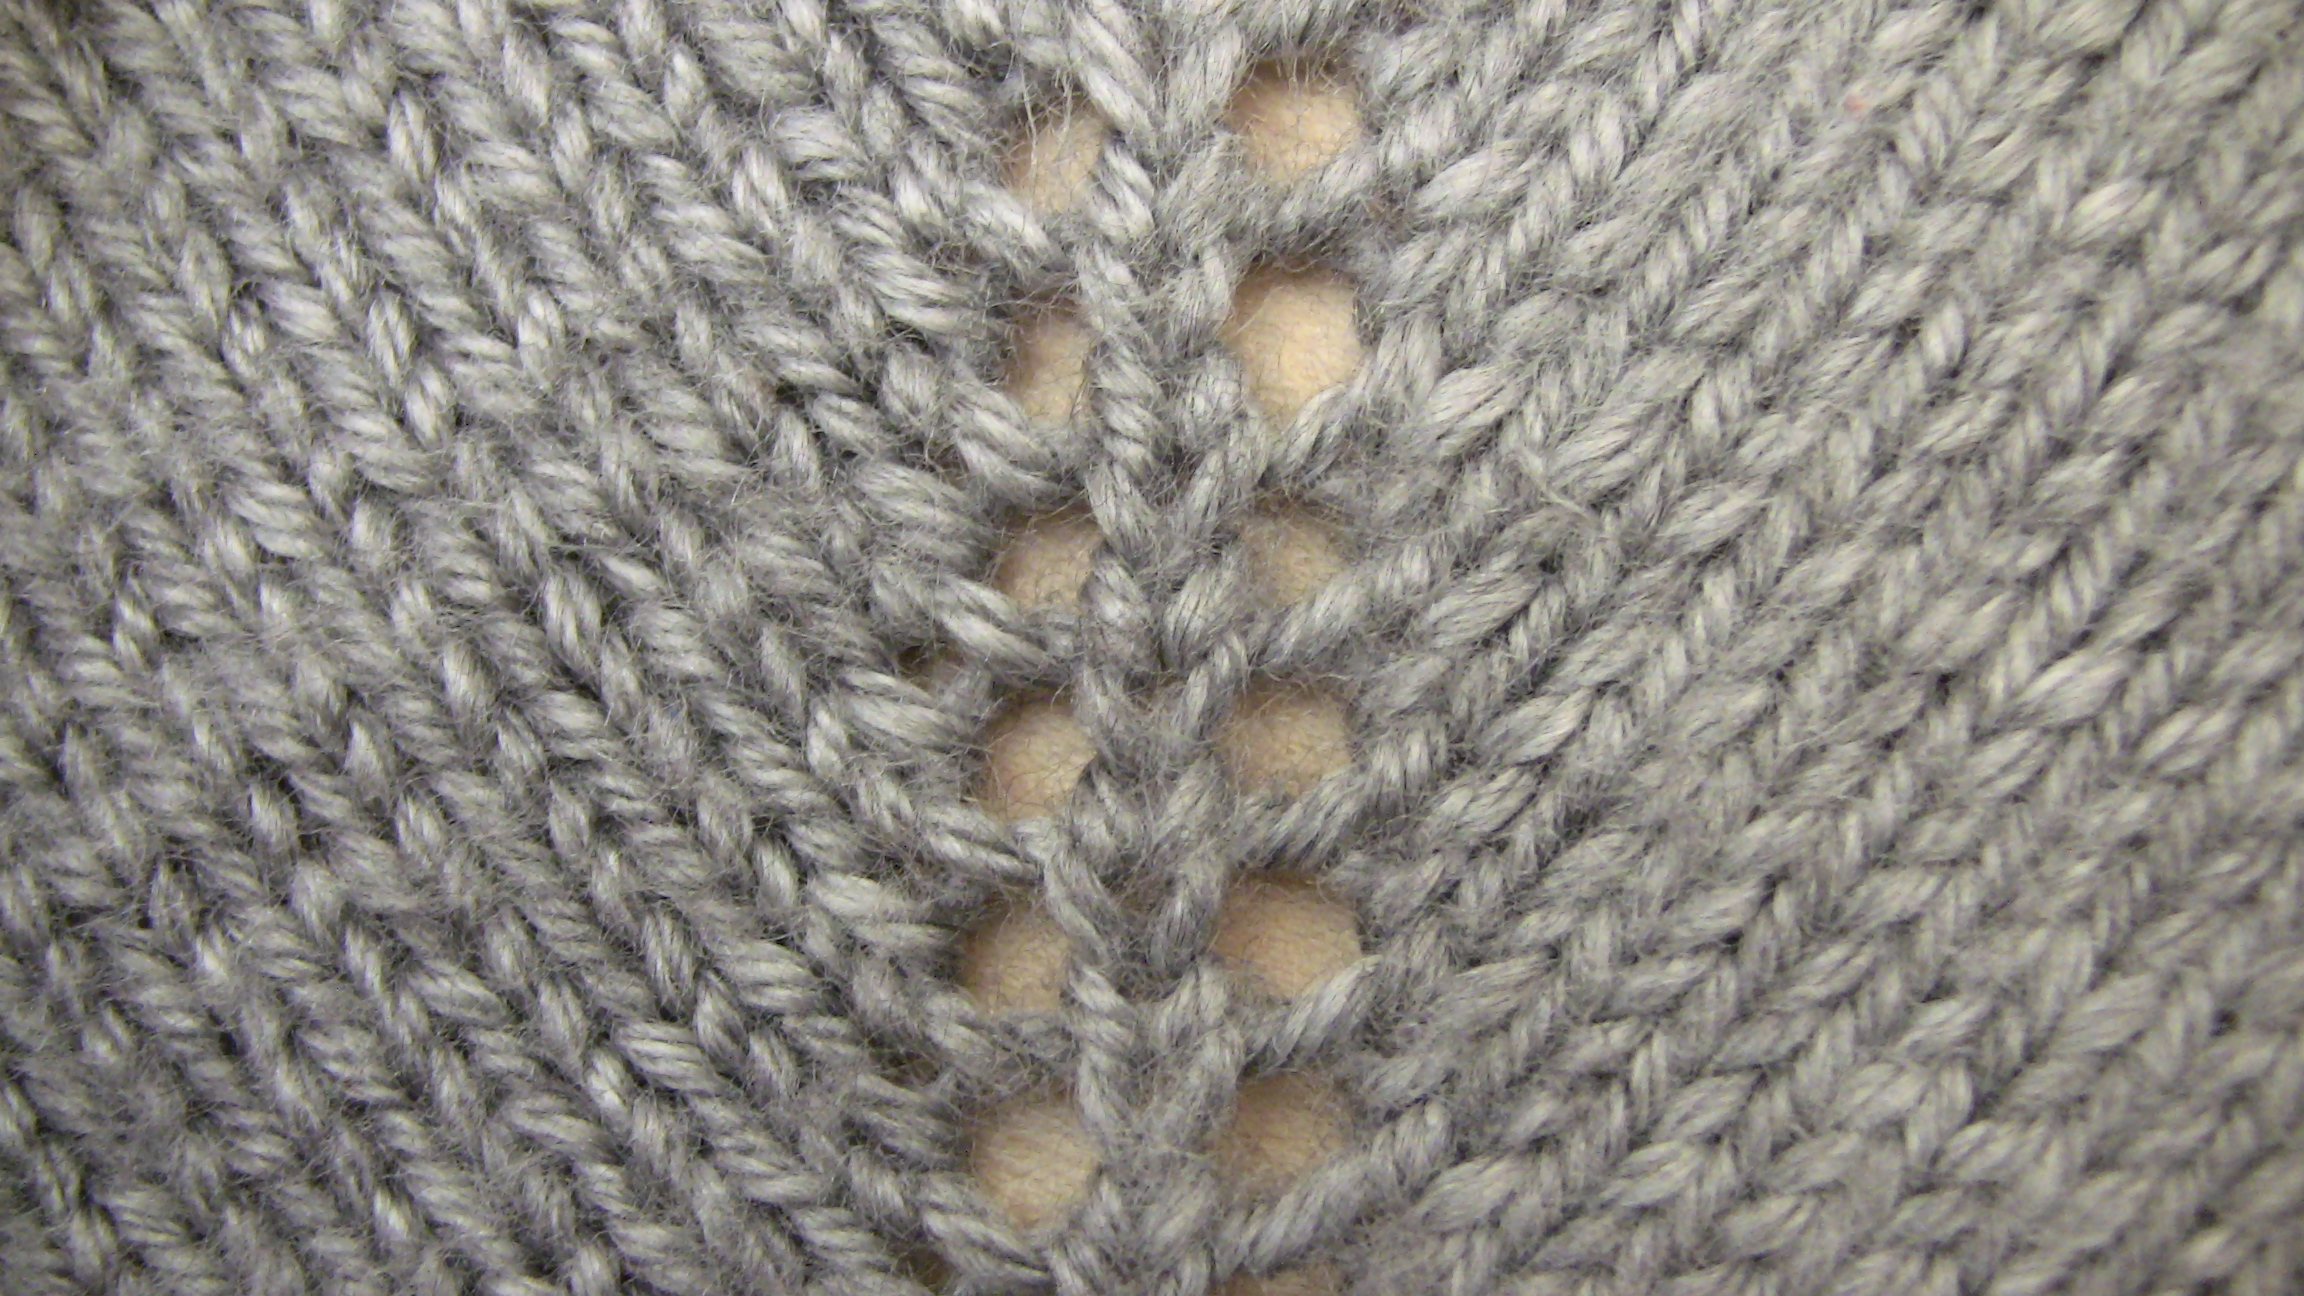 Knitting Increase Stitches : Lesson increasing type making a gap